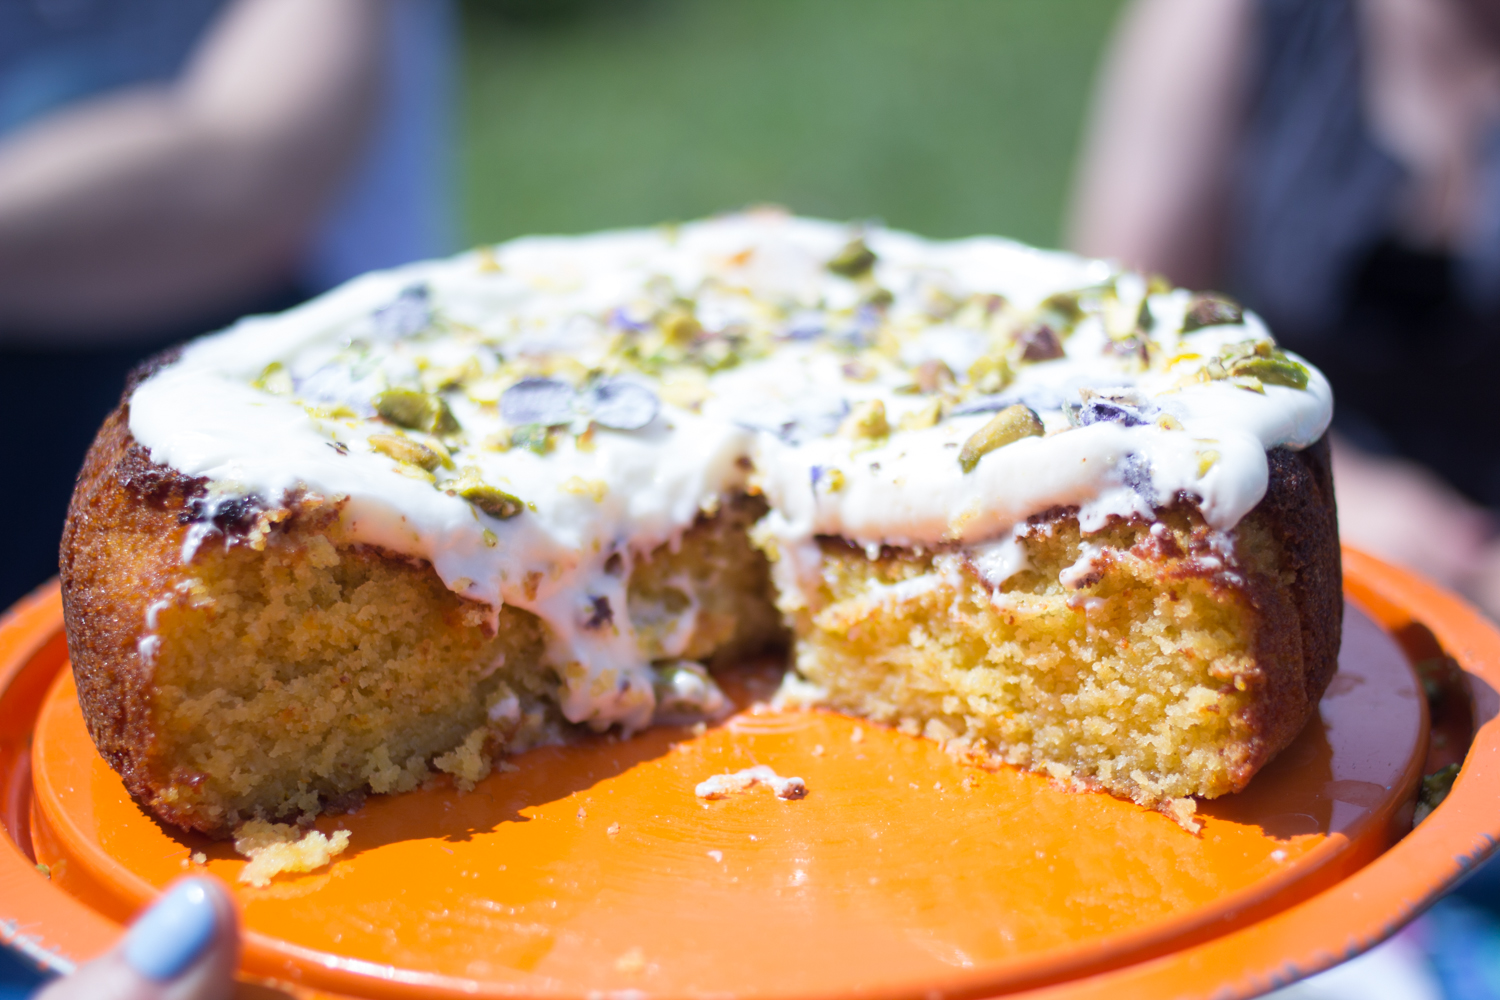 Orange, Pistachio and Almond cake